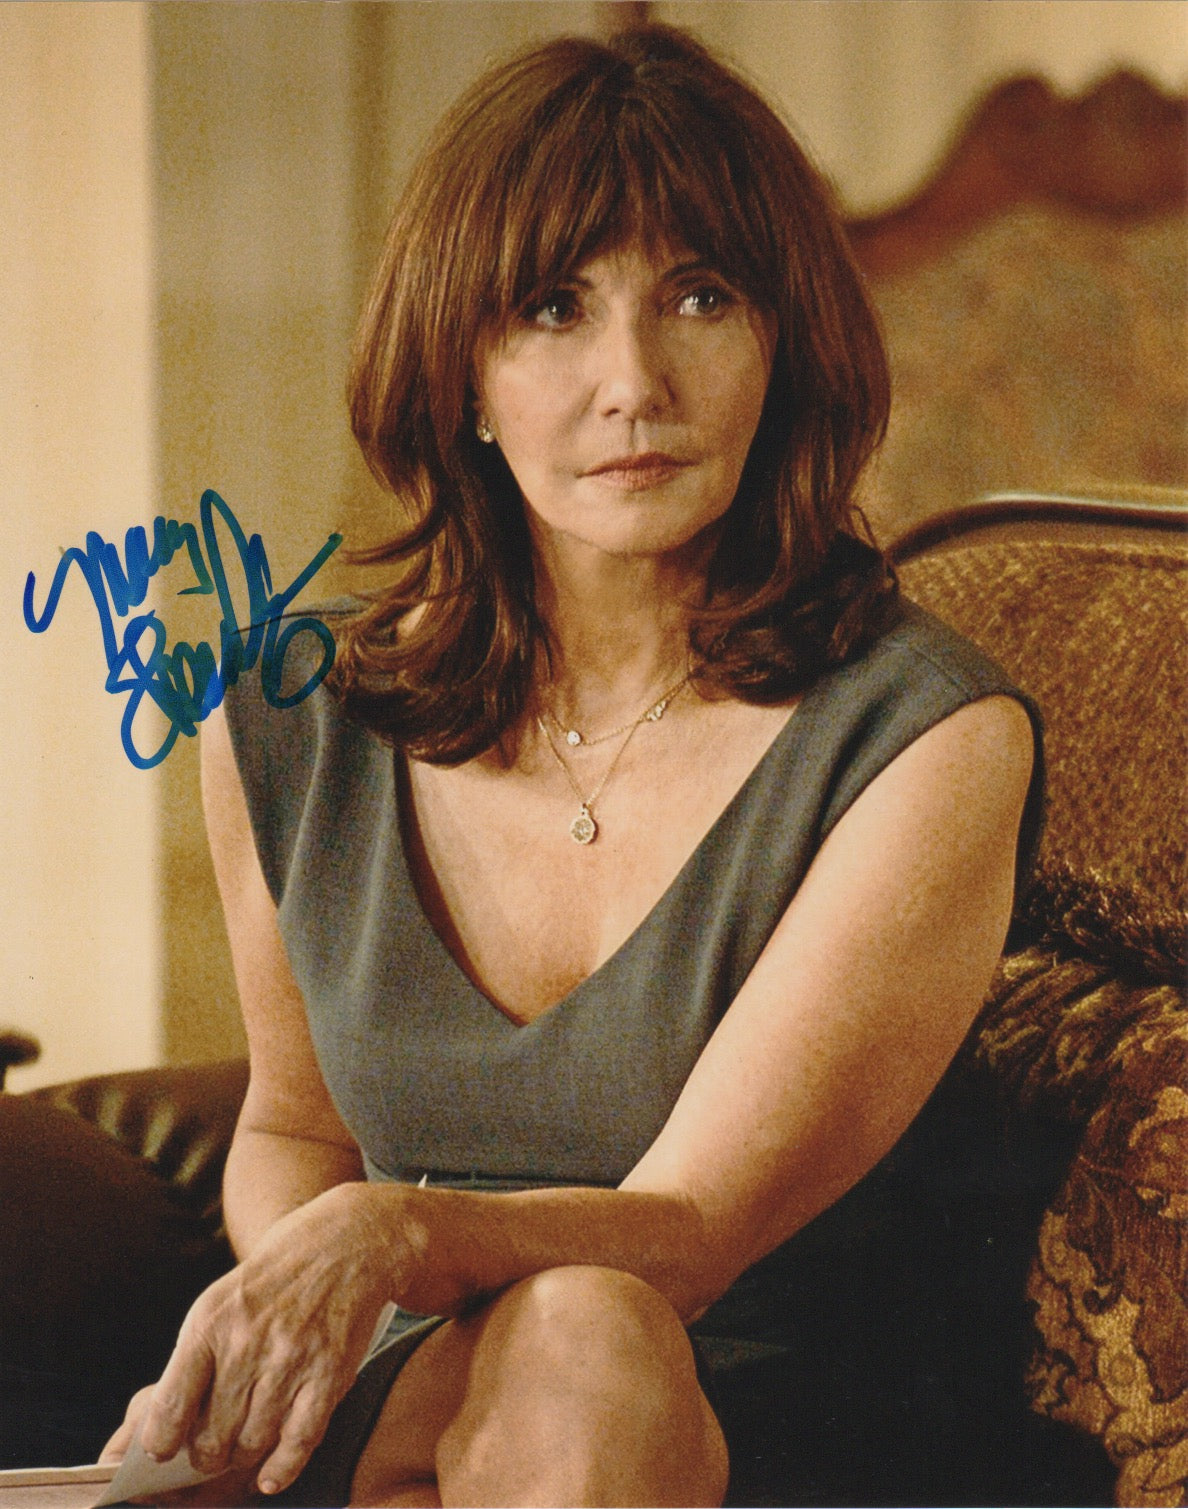 Mary Steenburgen Sexy Signed Autograph 8x10 Photo #6 - Outlaw Hobbies Authentic Autographs